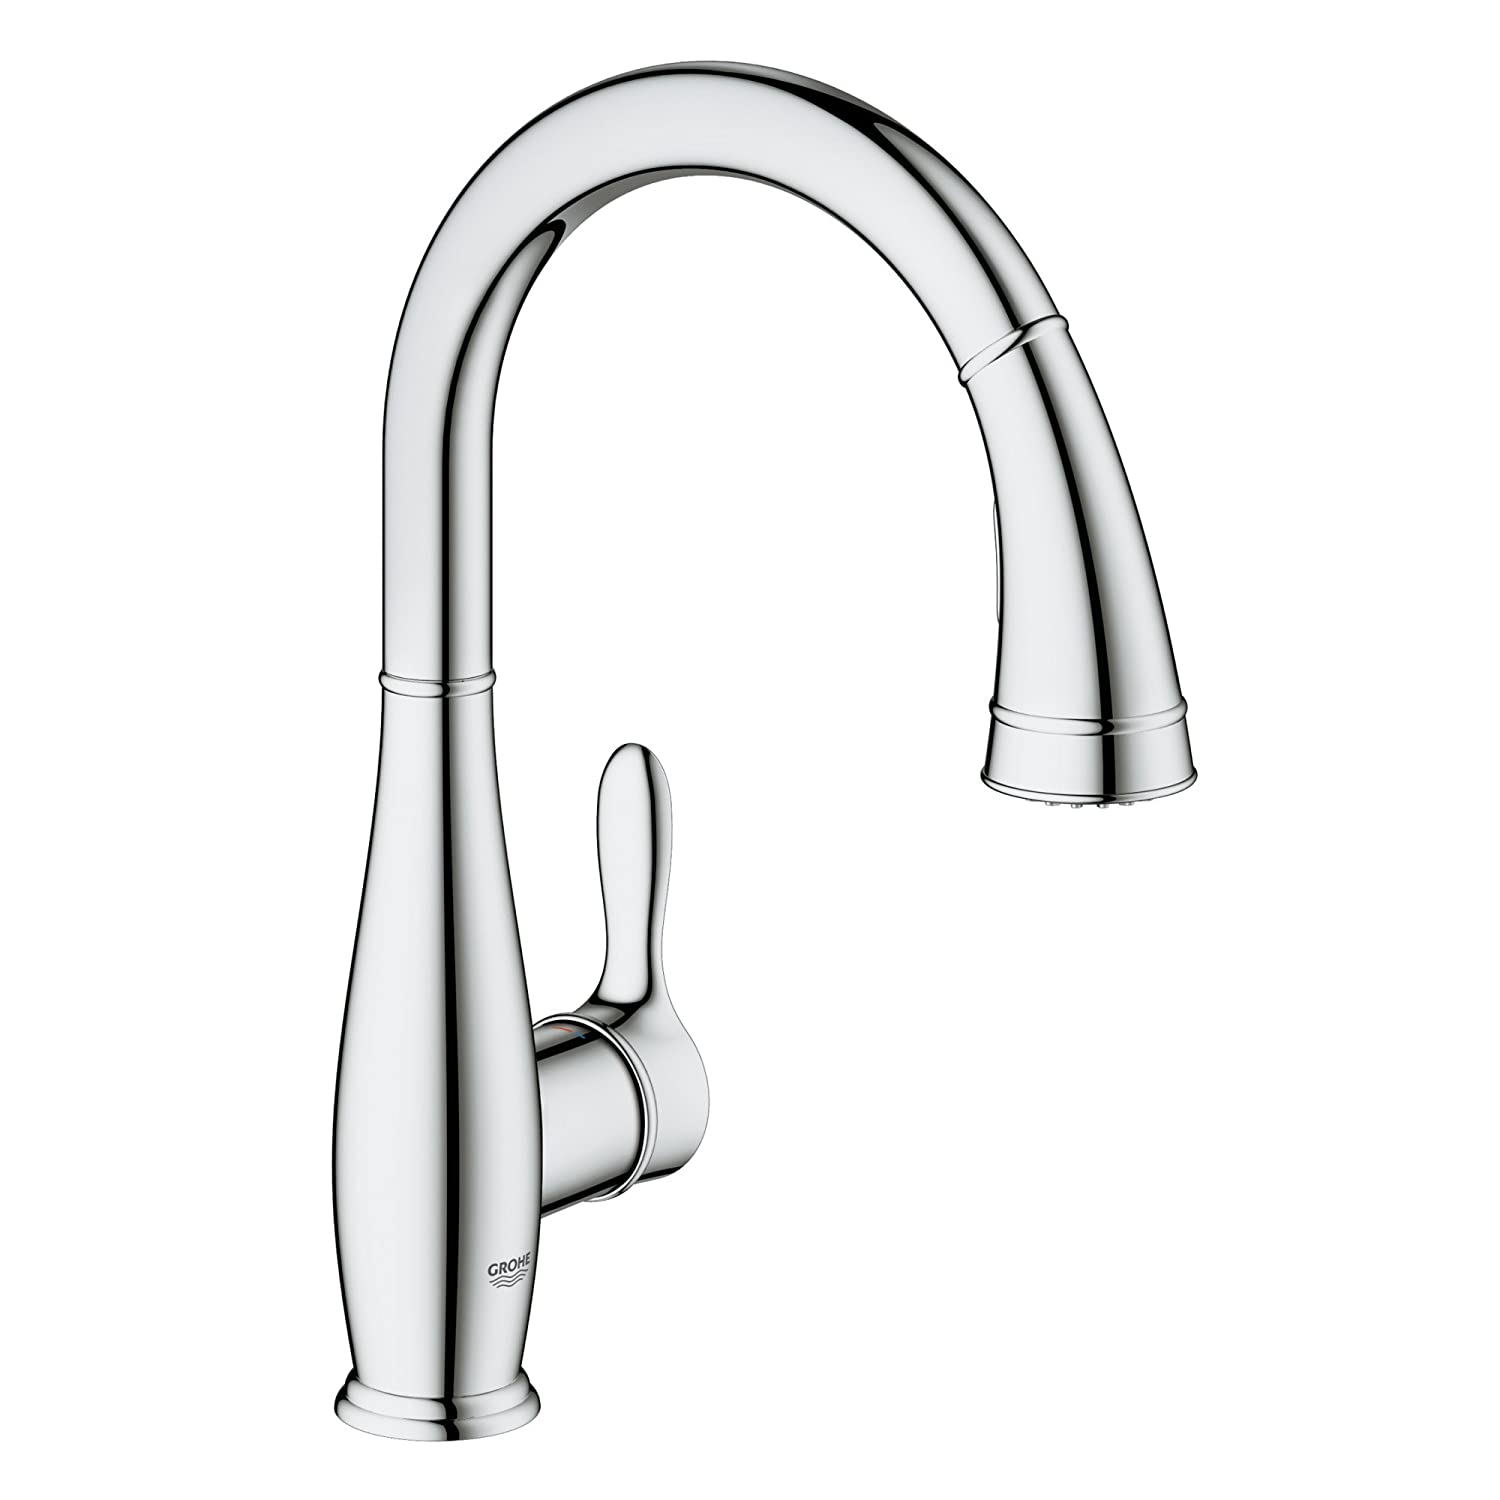 Parkfield Single-Handle Pull-Down Kitchen Faucet - - Amazon.com